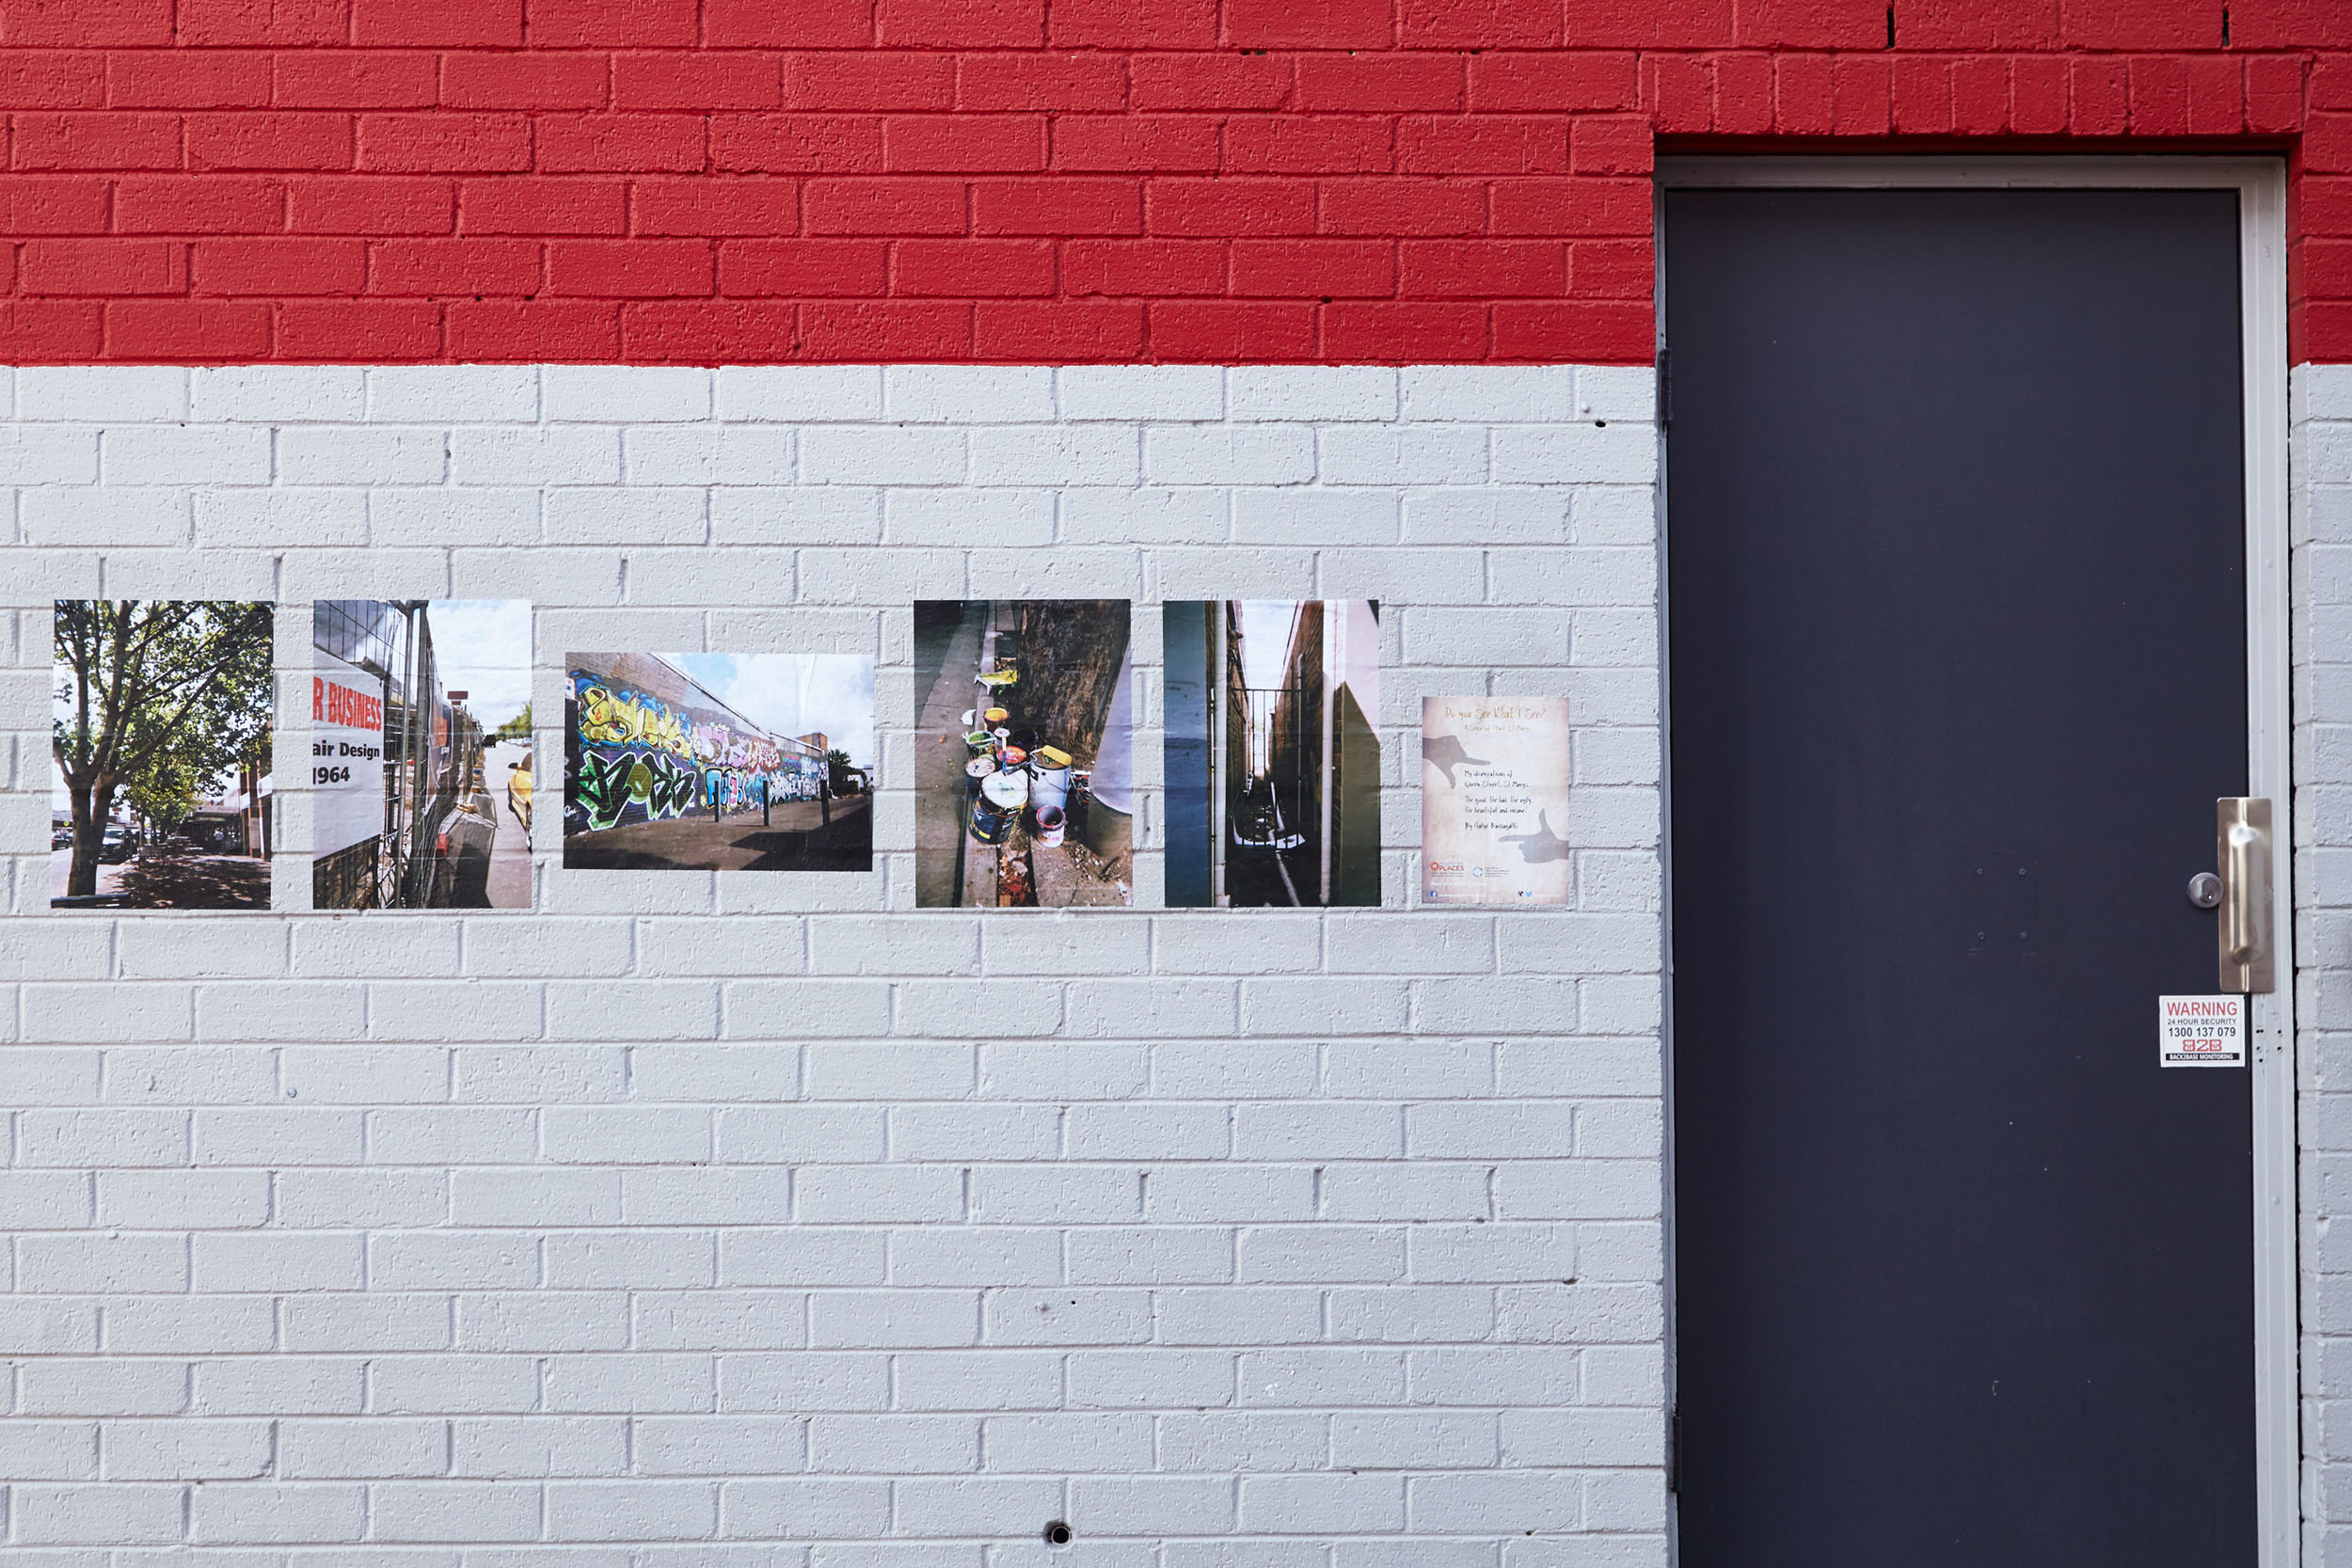 Magentic_Places_Outdoor_Exhibition_PasteUps_02.jpg